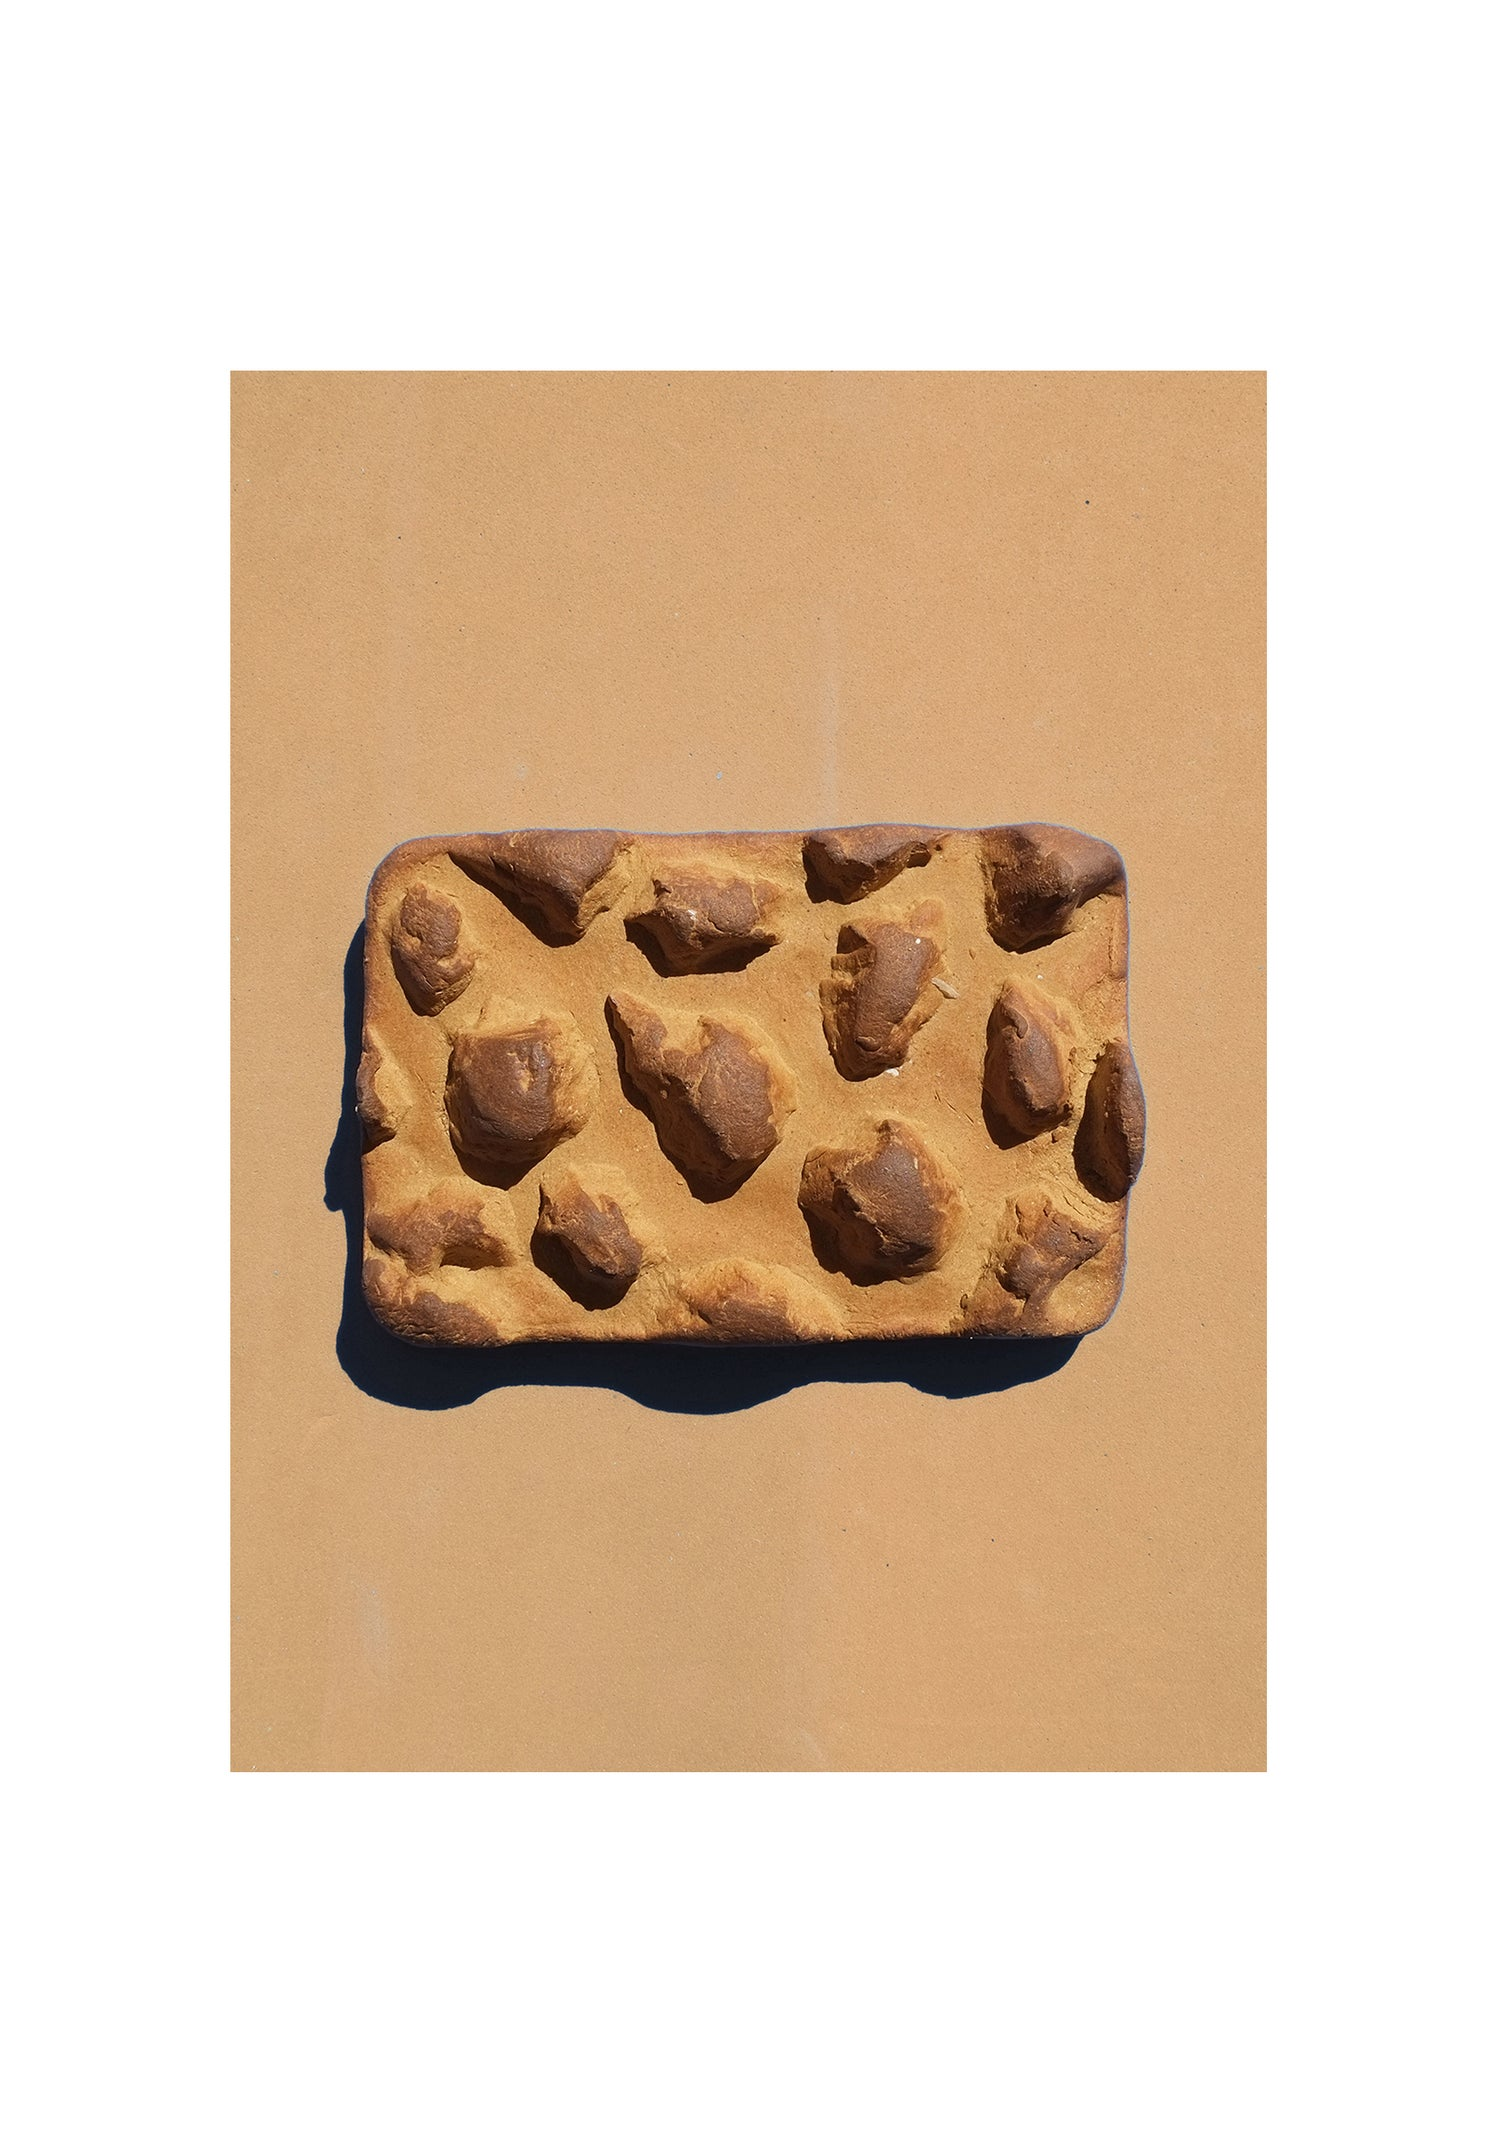 Image of SOAP DISH not on earth // col. burned cookie